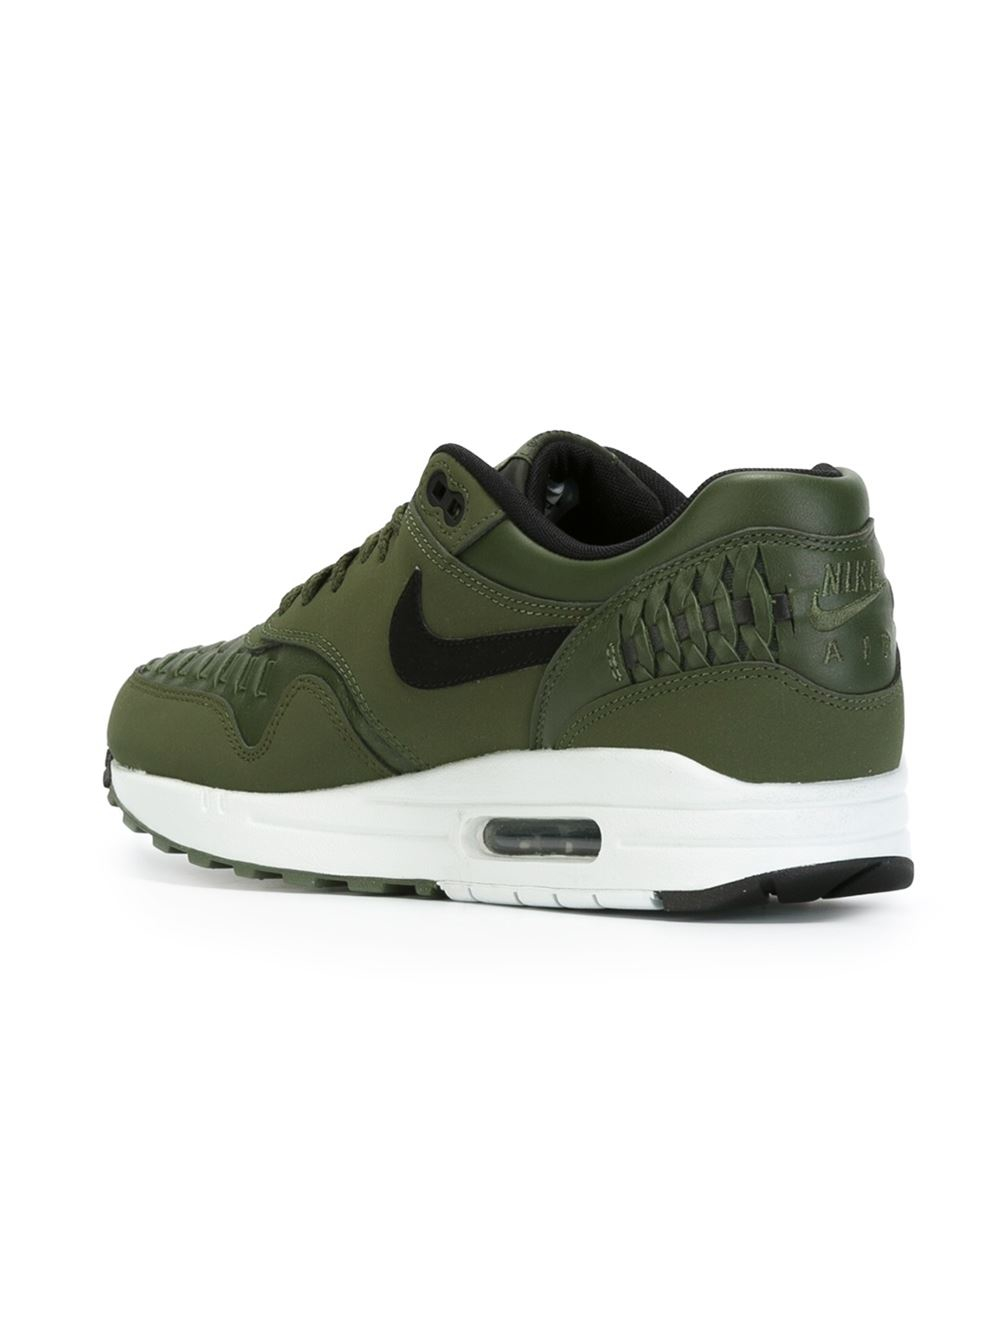 nike 39 air max 1 39 woven sneakers in green for men lyst. Black Bedroom Furniture Sets. Home Design Ideas